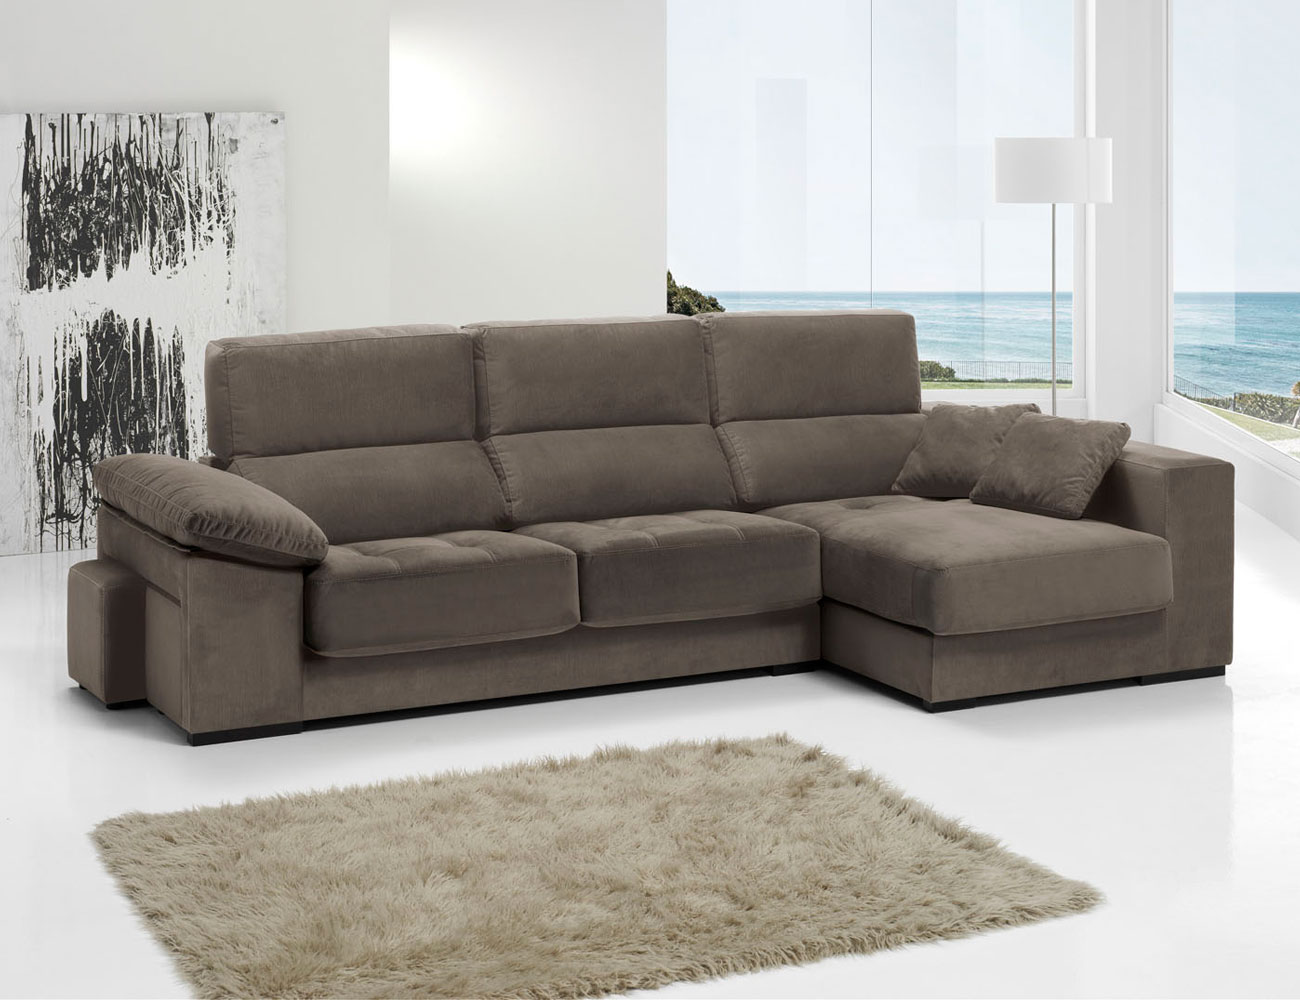 Sofa chaiselongue anti manchas bering pouf